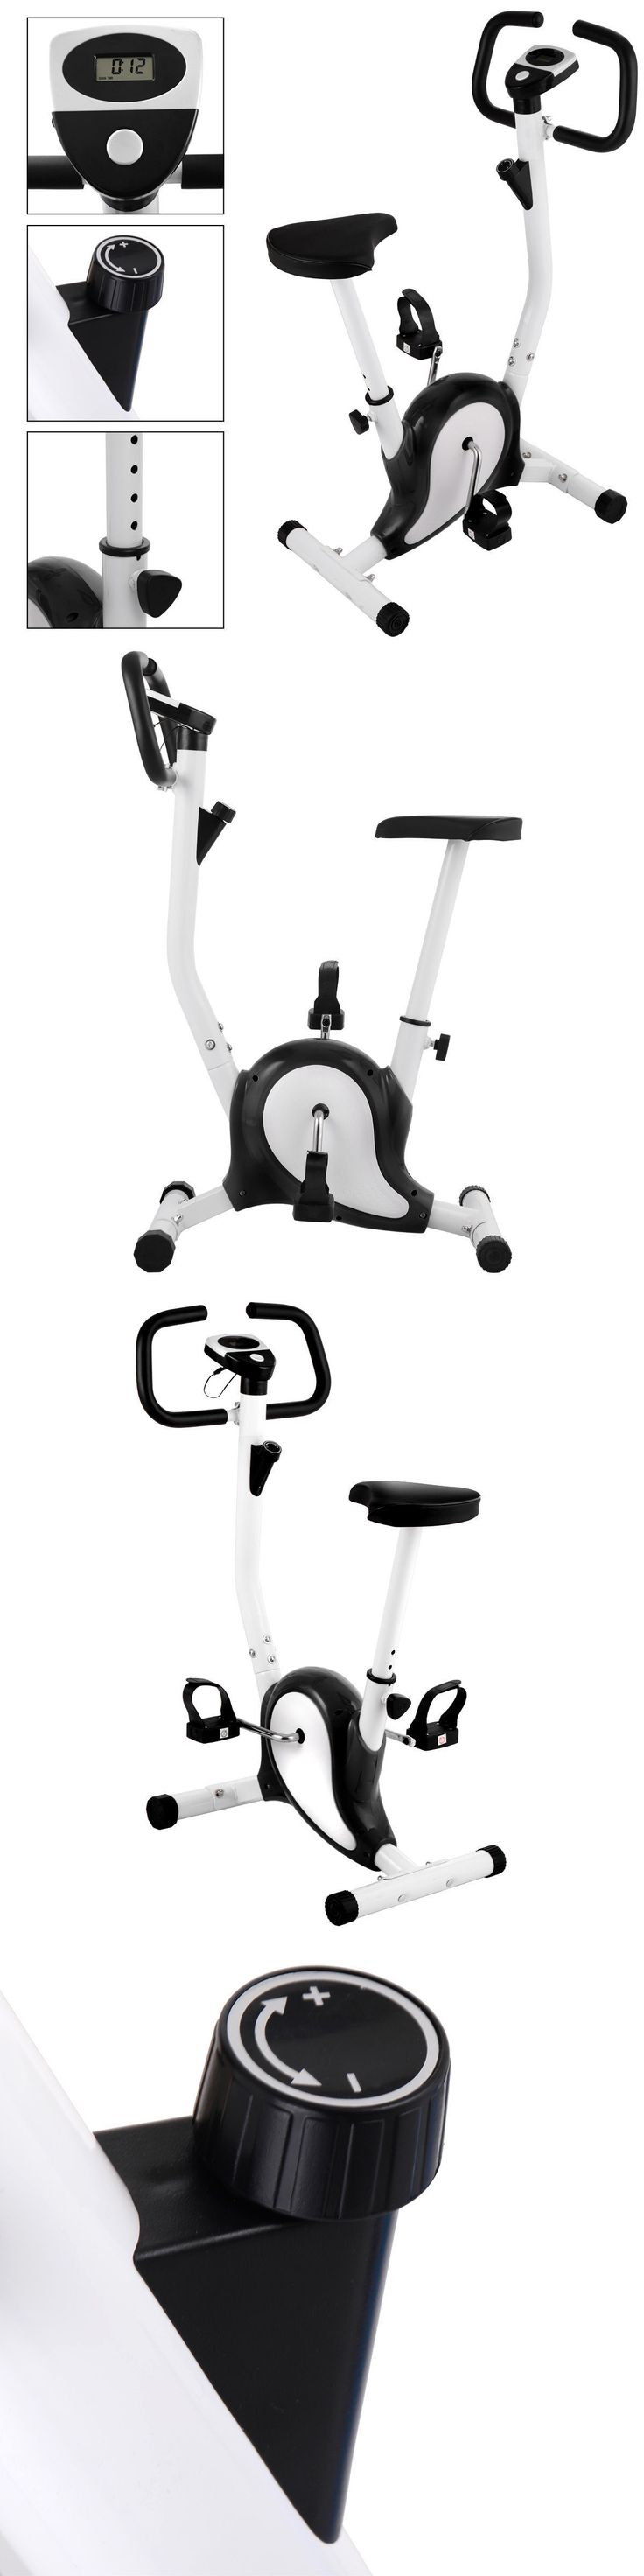 Exercise Bikes 58102: Upright Exercise Bike Magnetic Resistance Cardio Workout Stationary Cycle Black -> BUY IT NOW ONLY: $47.99 on eBay!